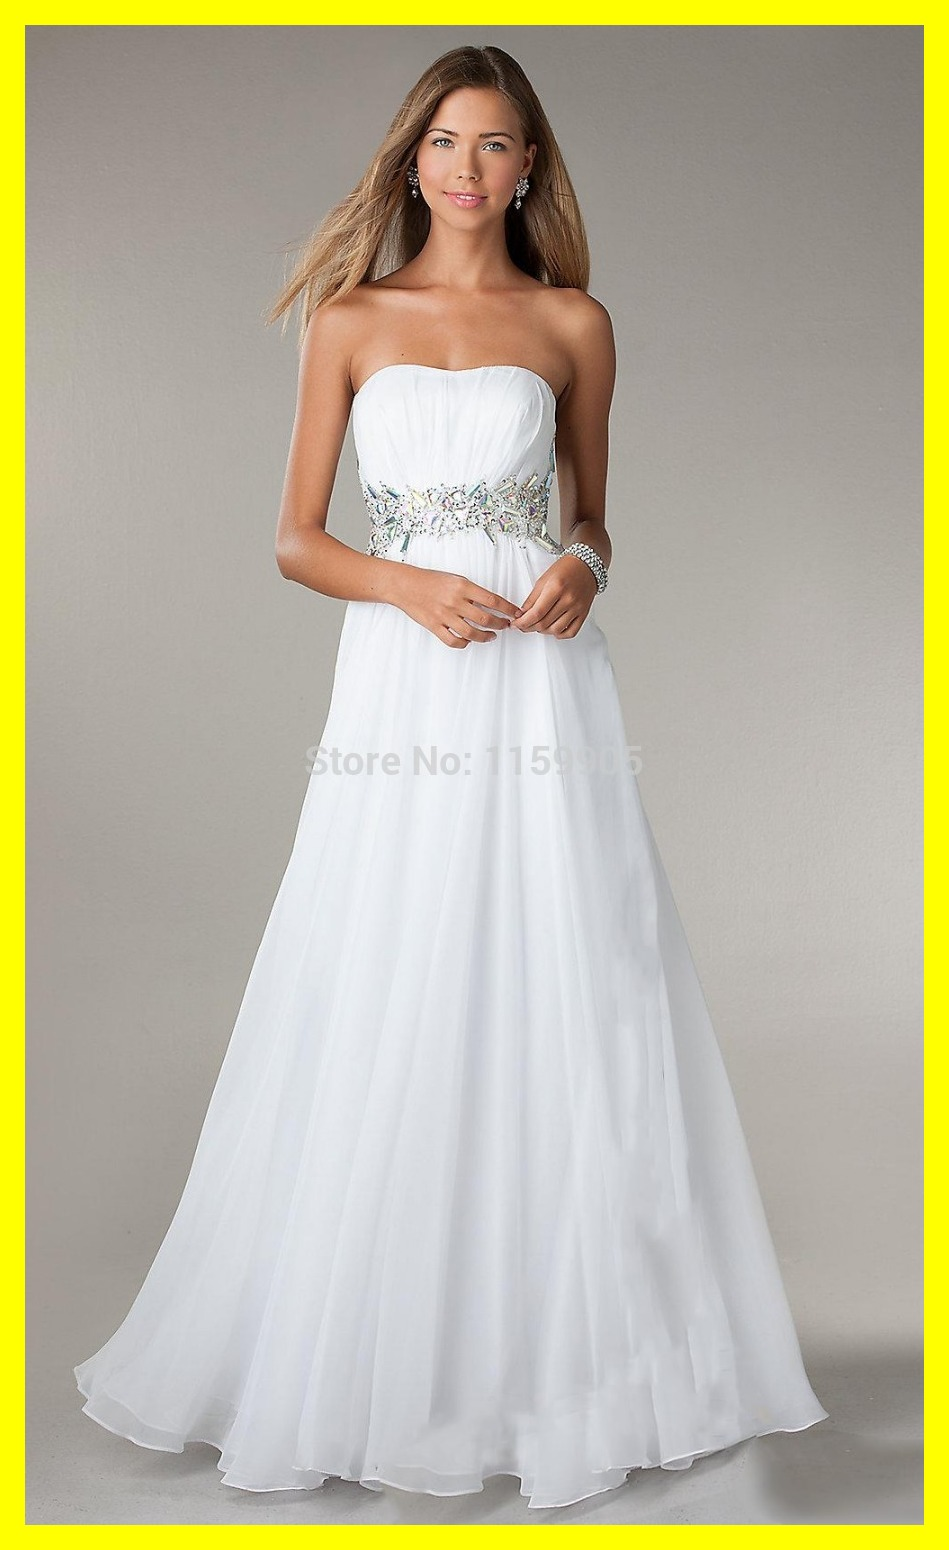 Prom Dress Stores In Rochester New York